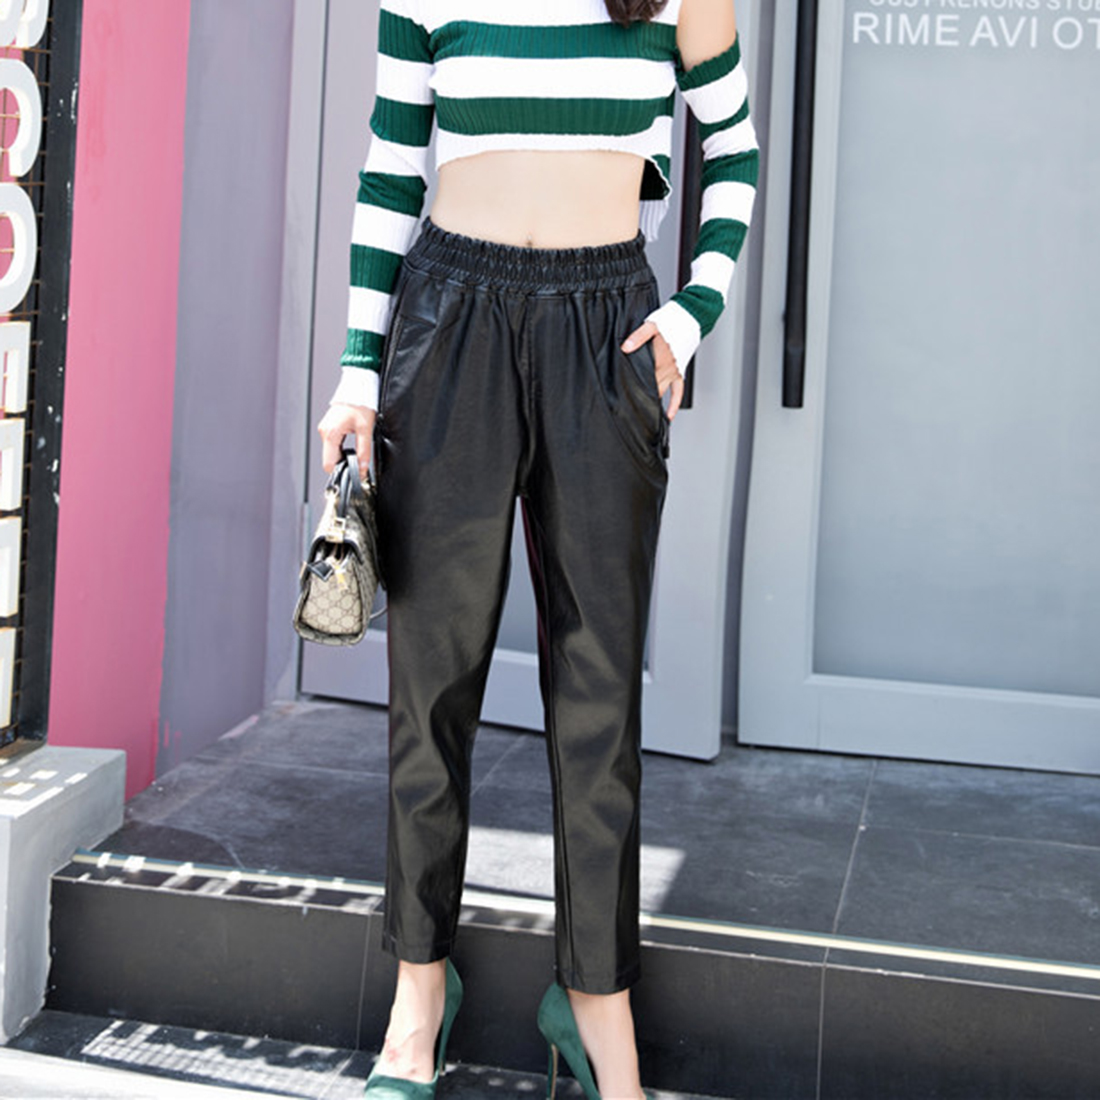 black leather pants women Autumn winter 2017 sexy high waist trousers pencil pants capris Casual Solid Leather Trousers